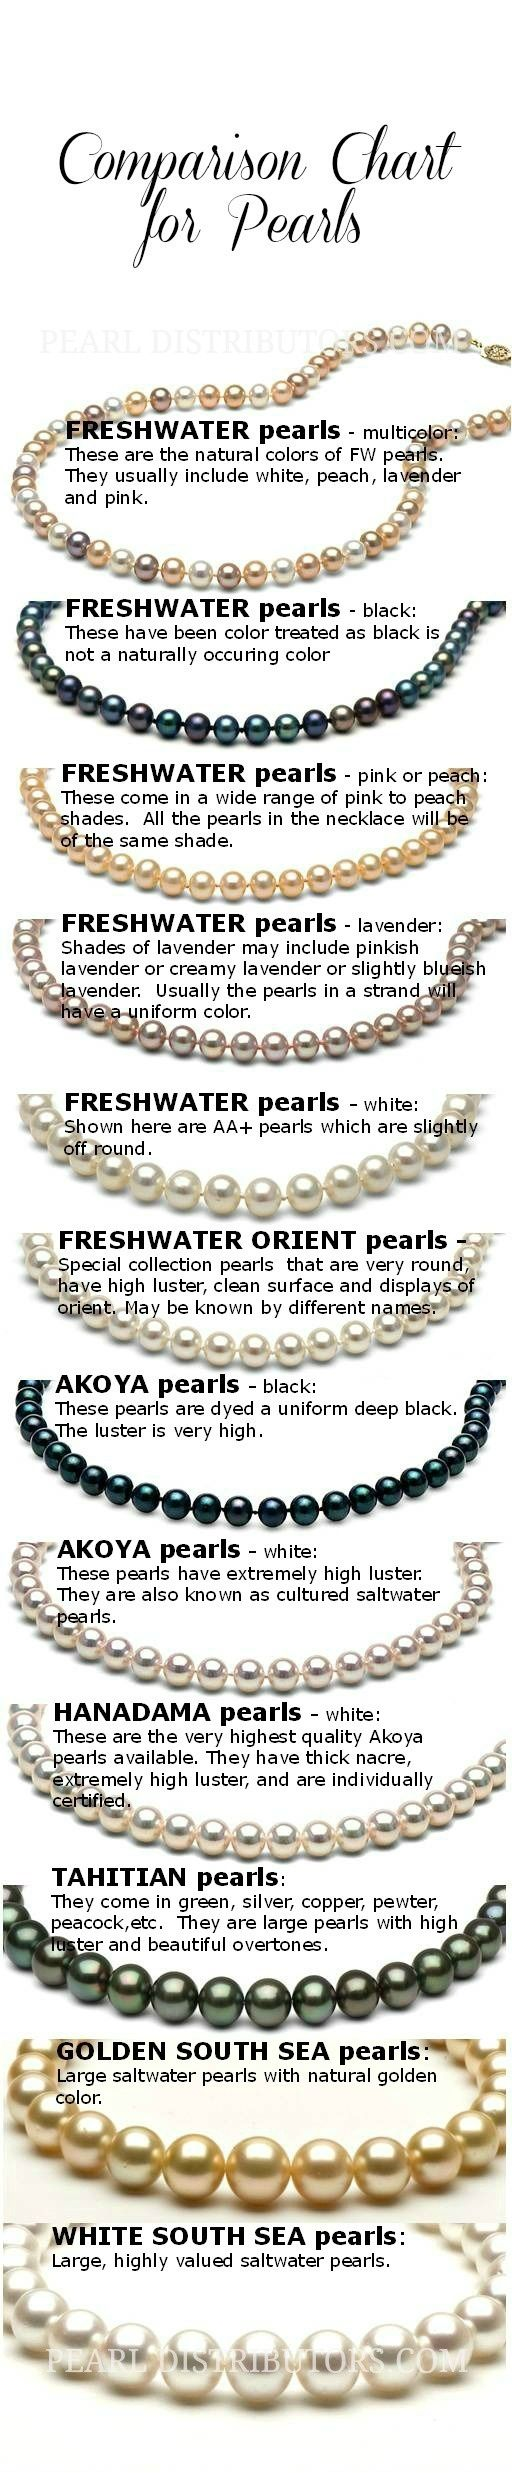 25 best ideas about pearl necklaces on pinterest. Black Bedroom Furniture Sets. Home Design Ideas